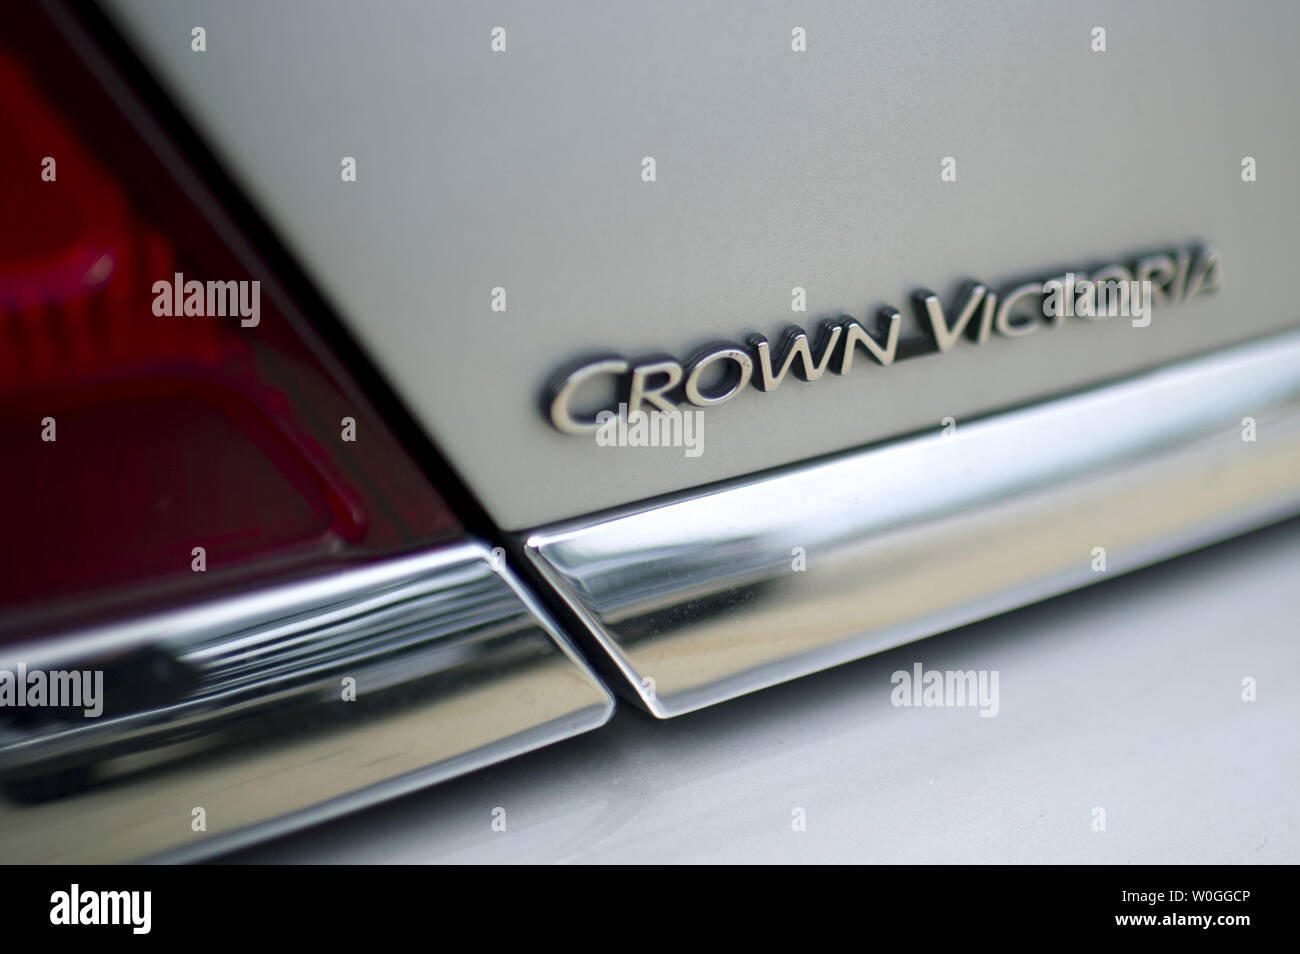 A Ford Crown Victory is seen in a parking lot in Maryland on